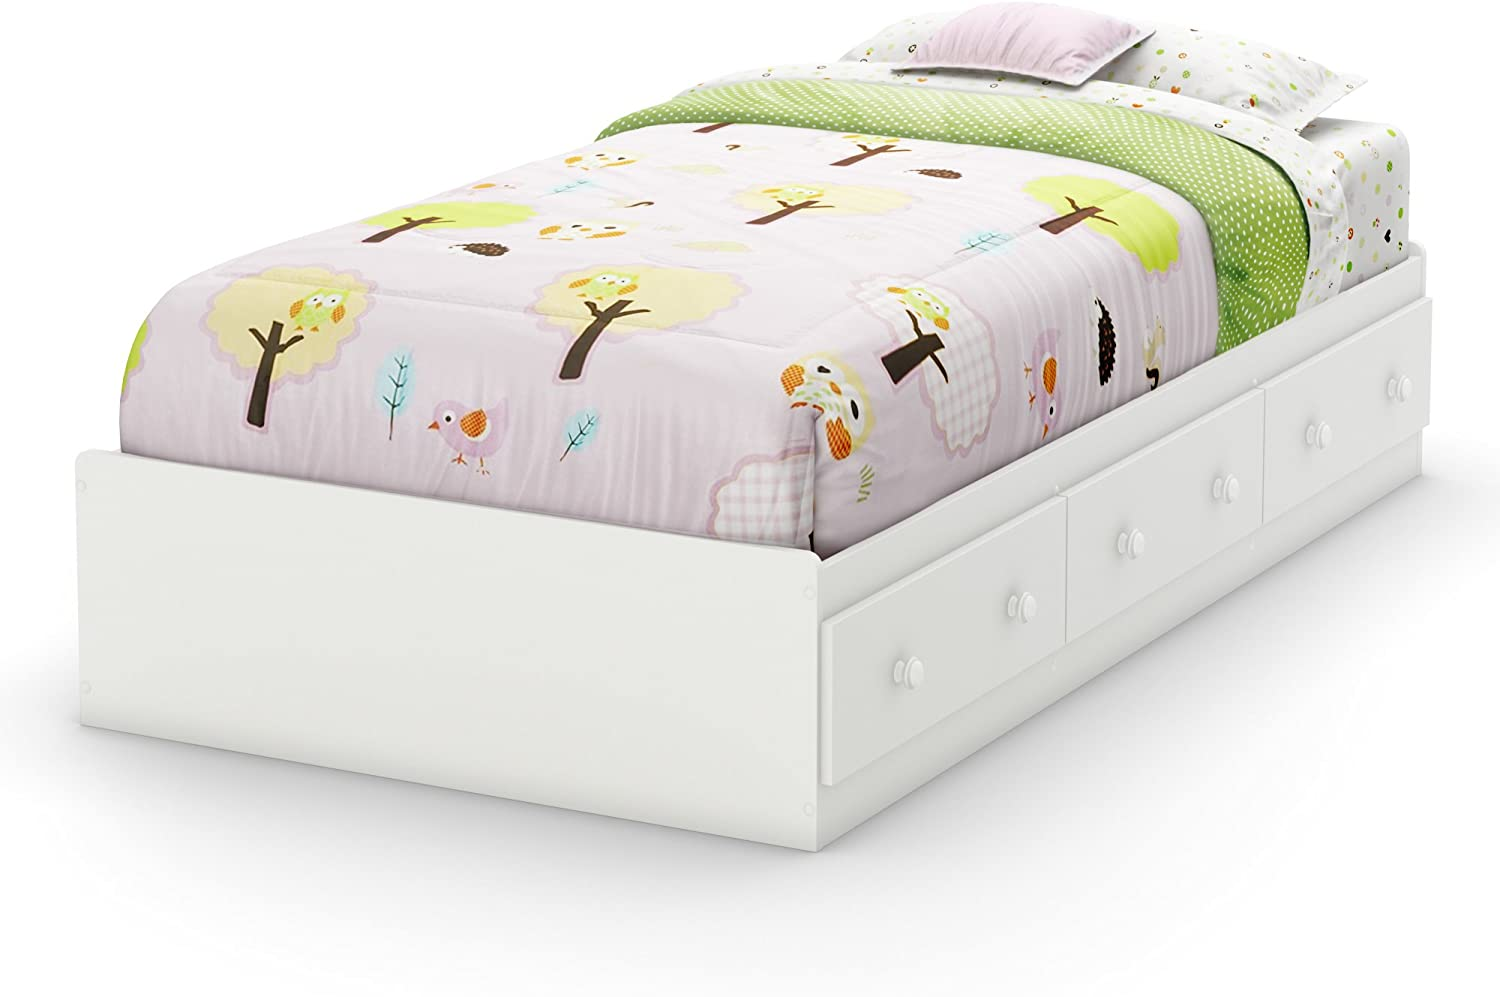 South Shore Furniture Savannah Collection, Twin Bed, Pure White